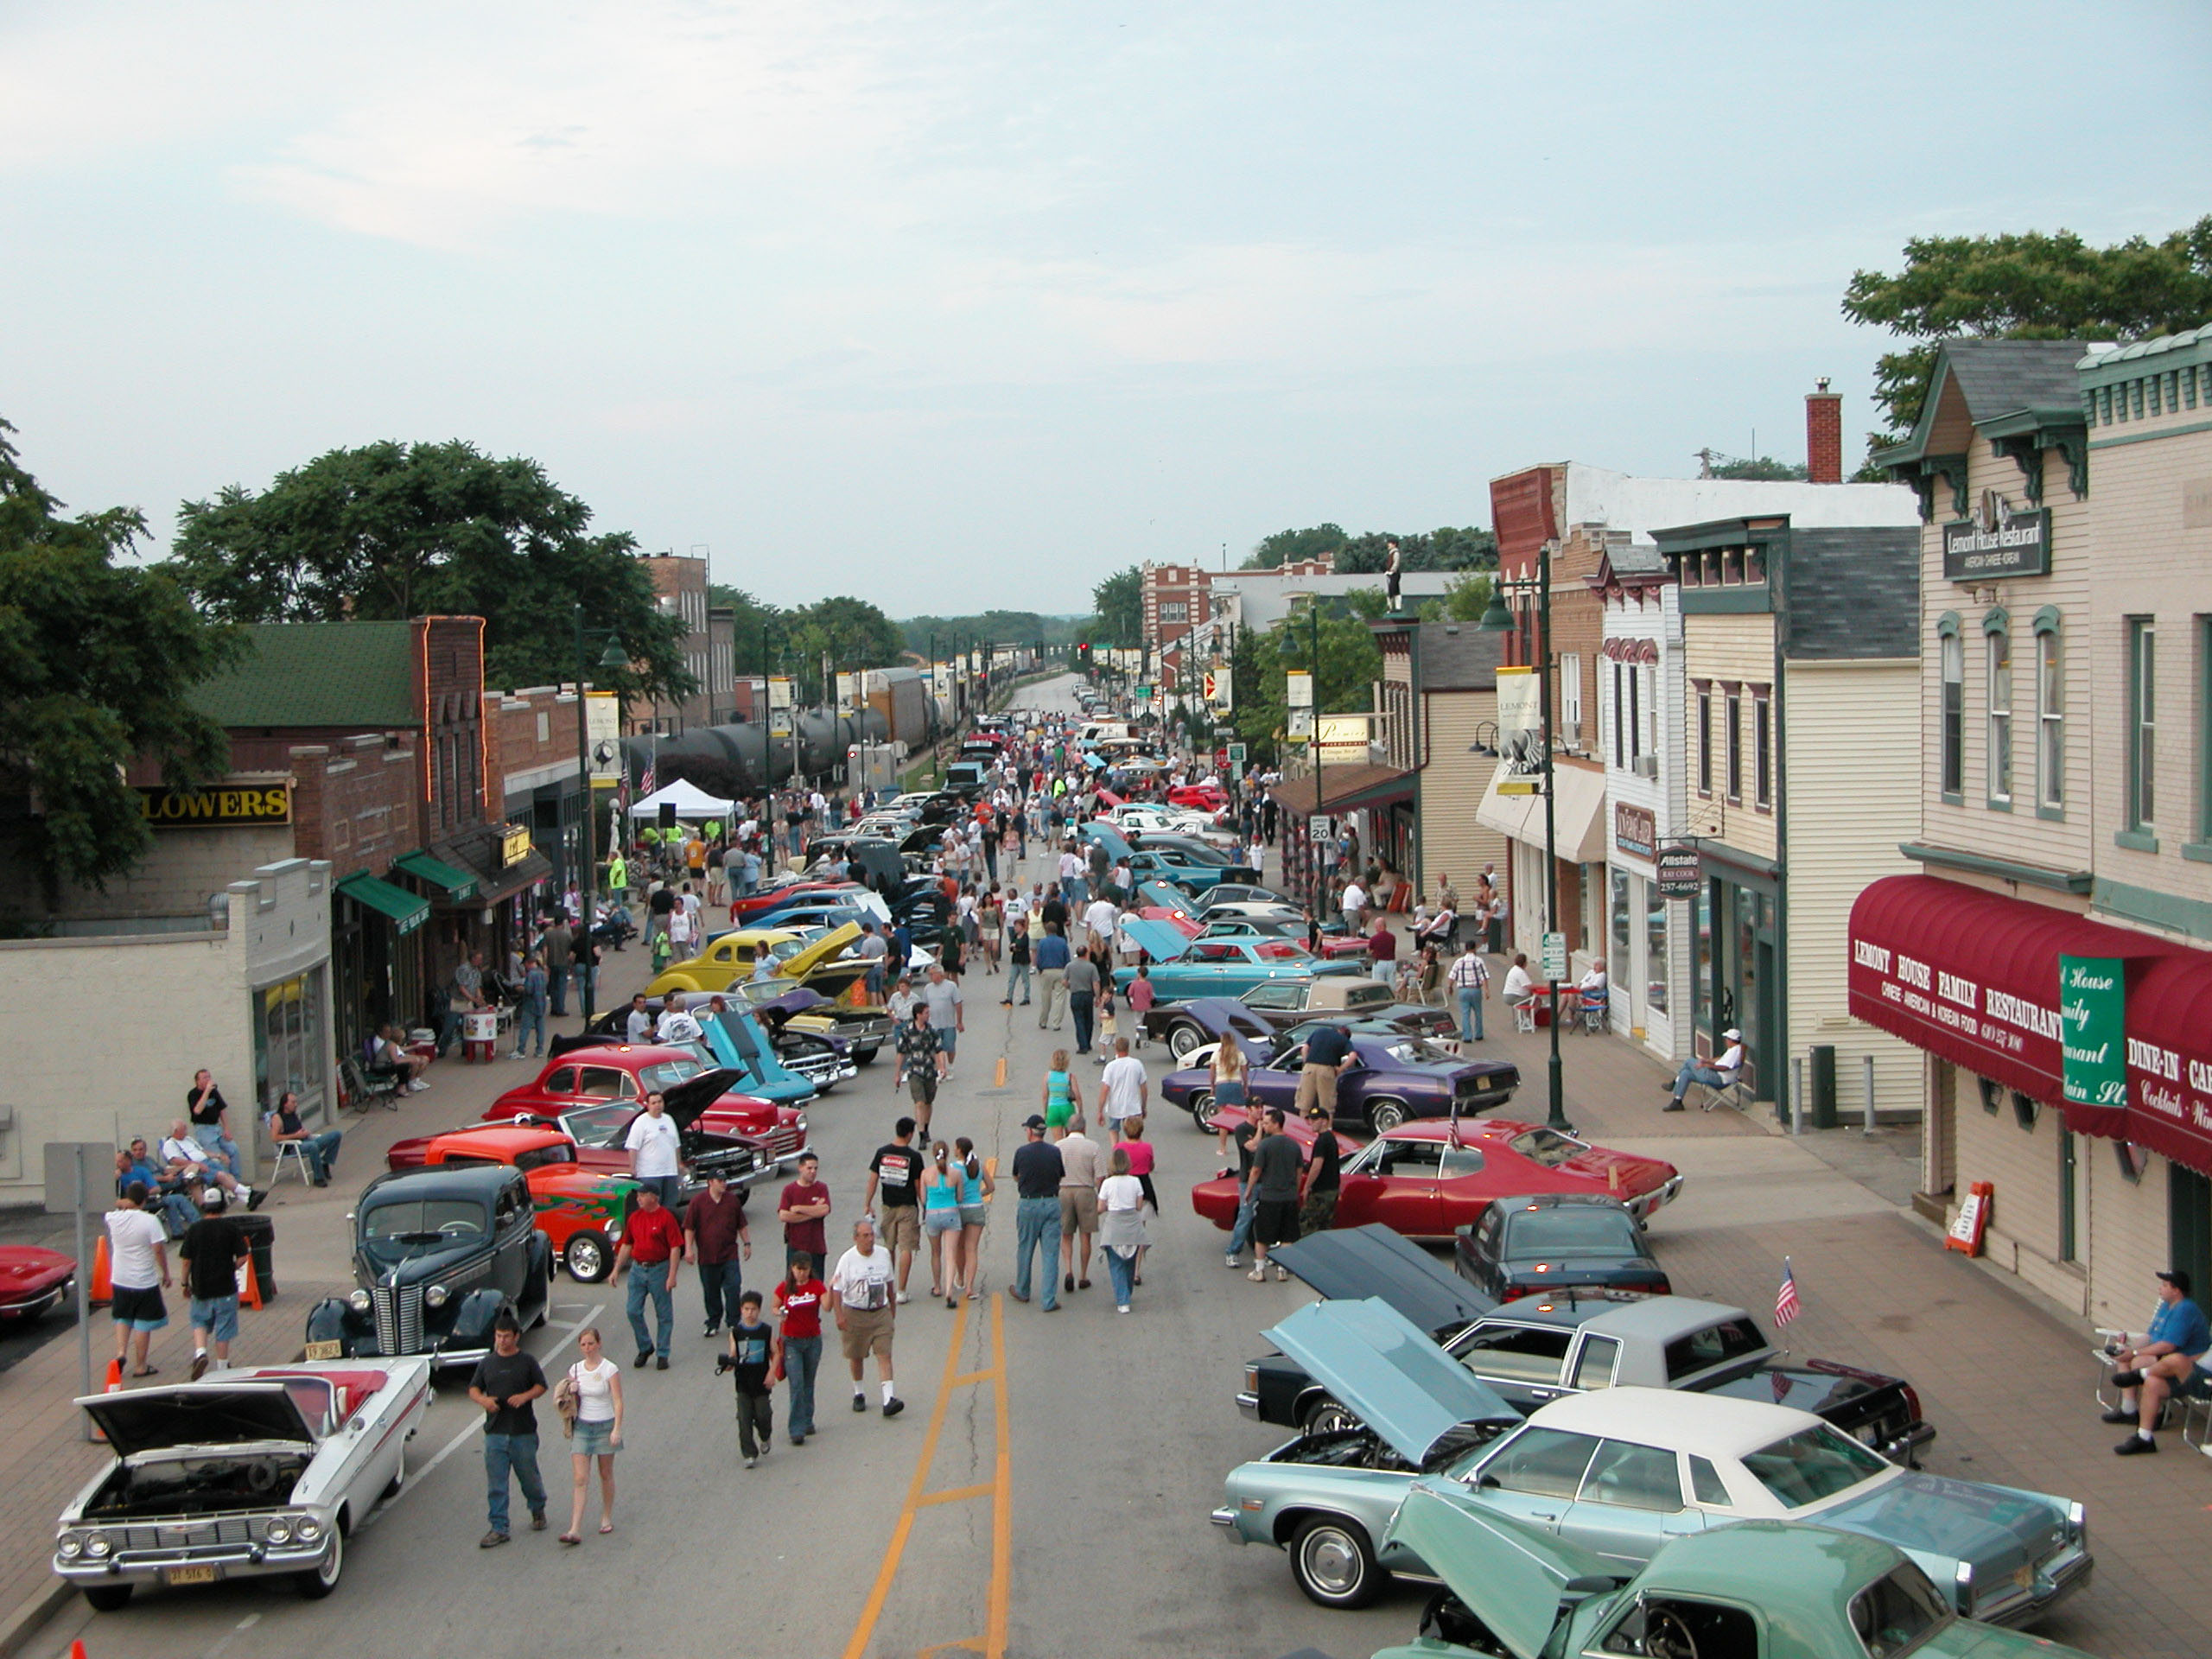 Cruise Nights are a weekly summer tradition in Lemont. Crowds come from around the area to admire classic cars in historic downtown Lemont.